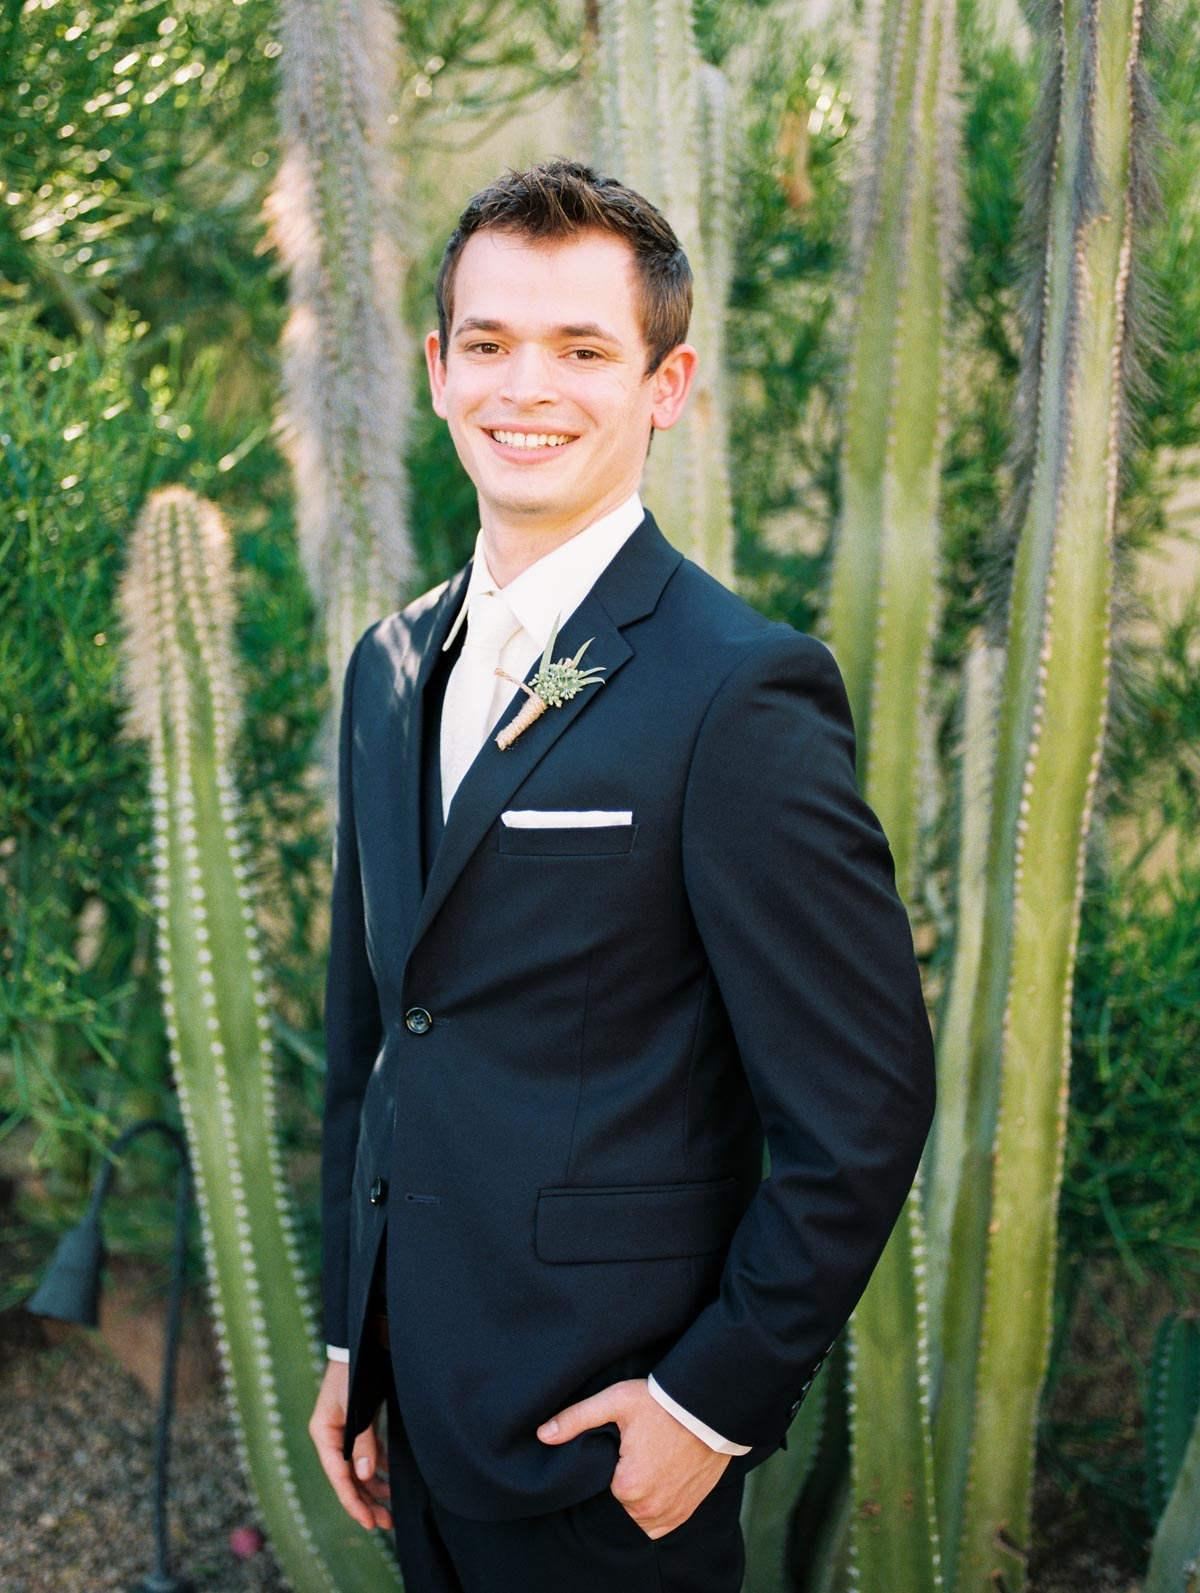 groom-in-tux-2.jpg